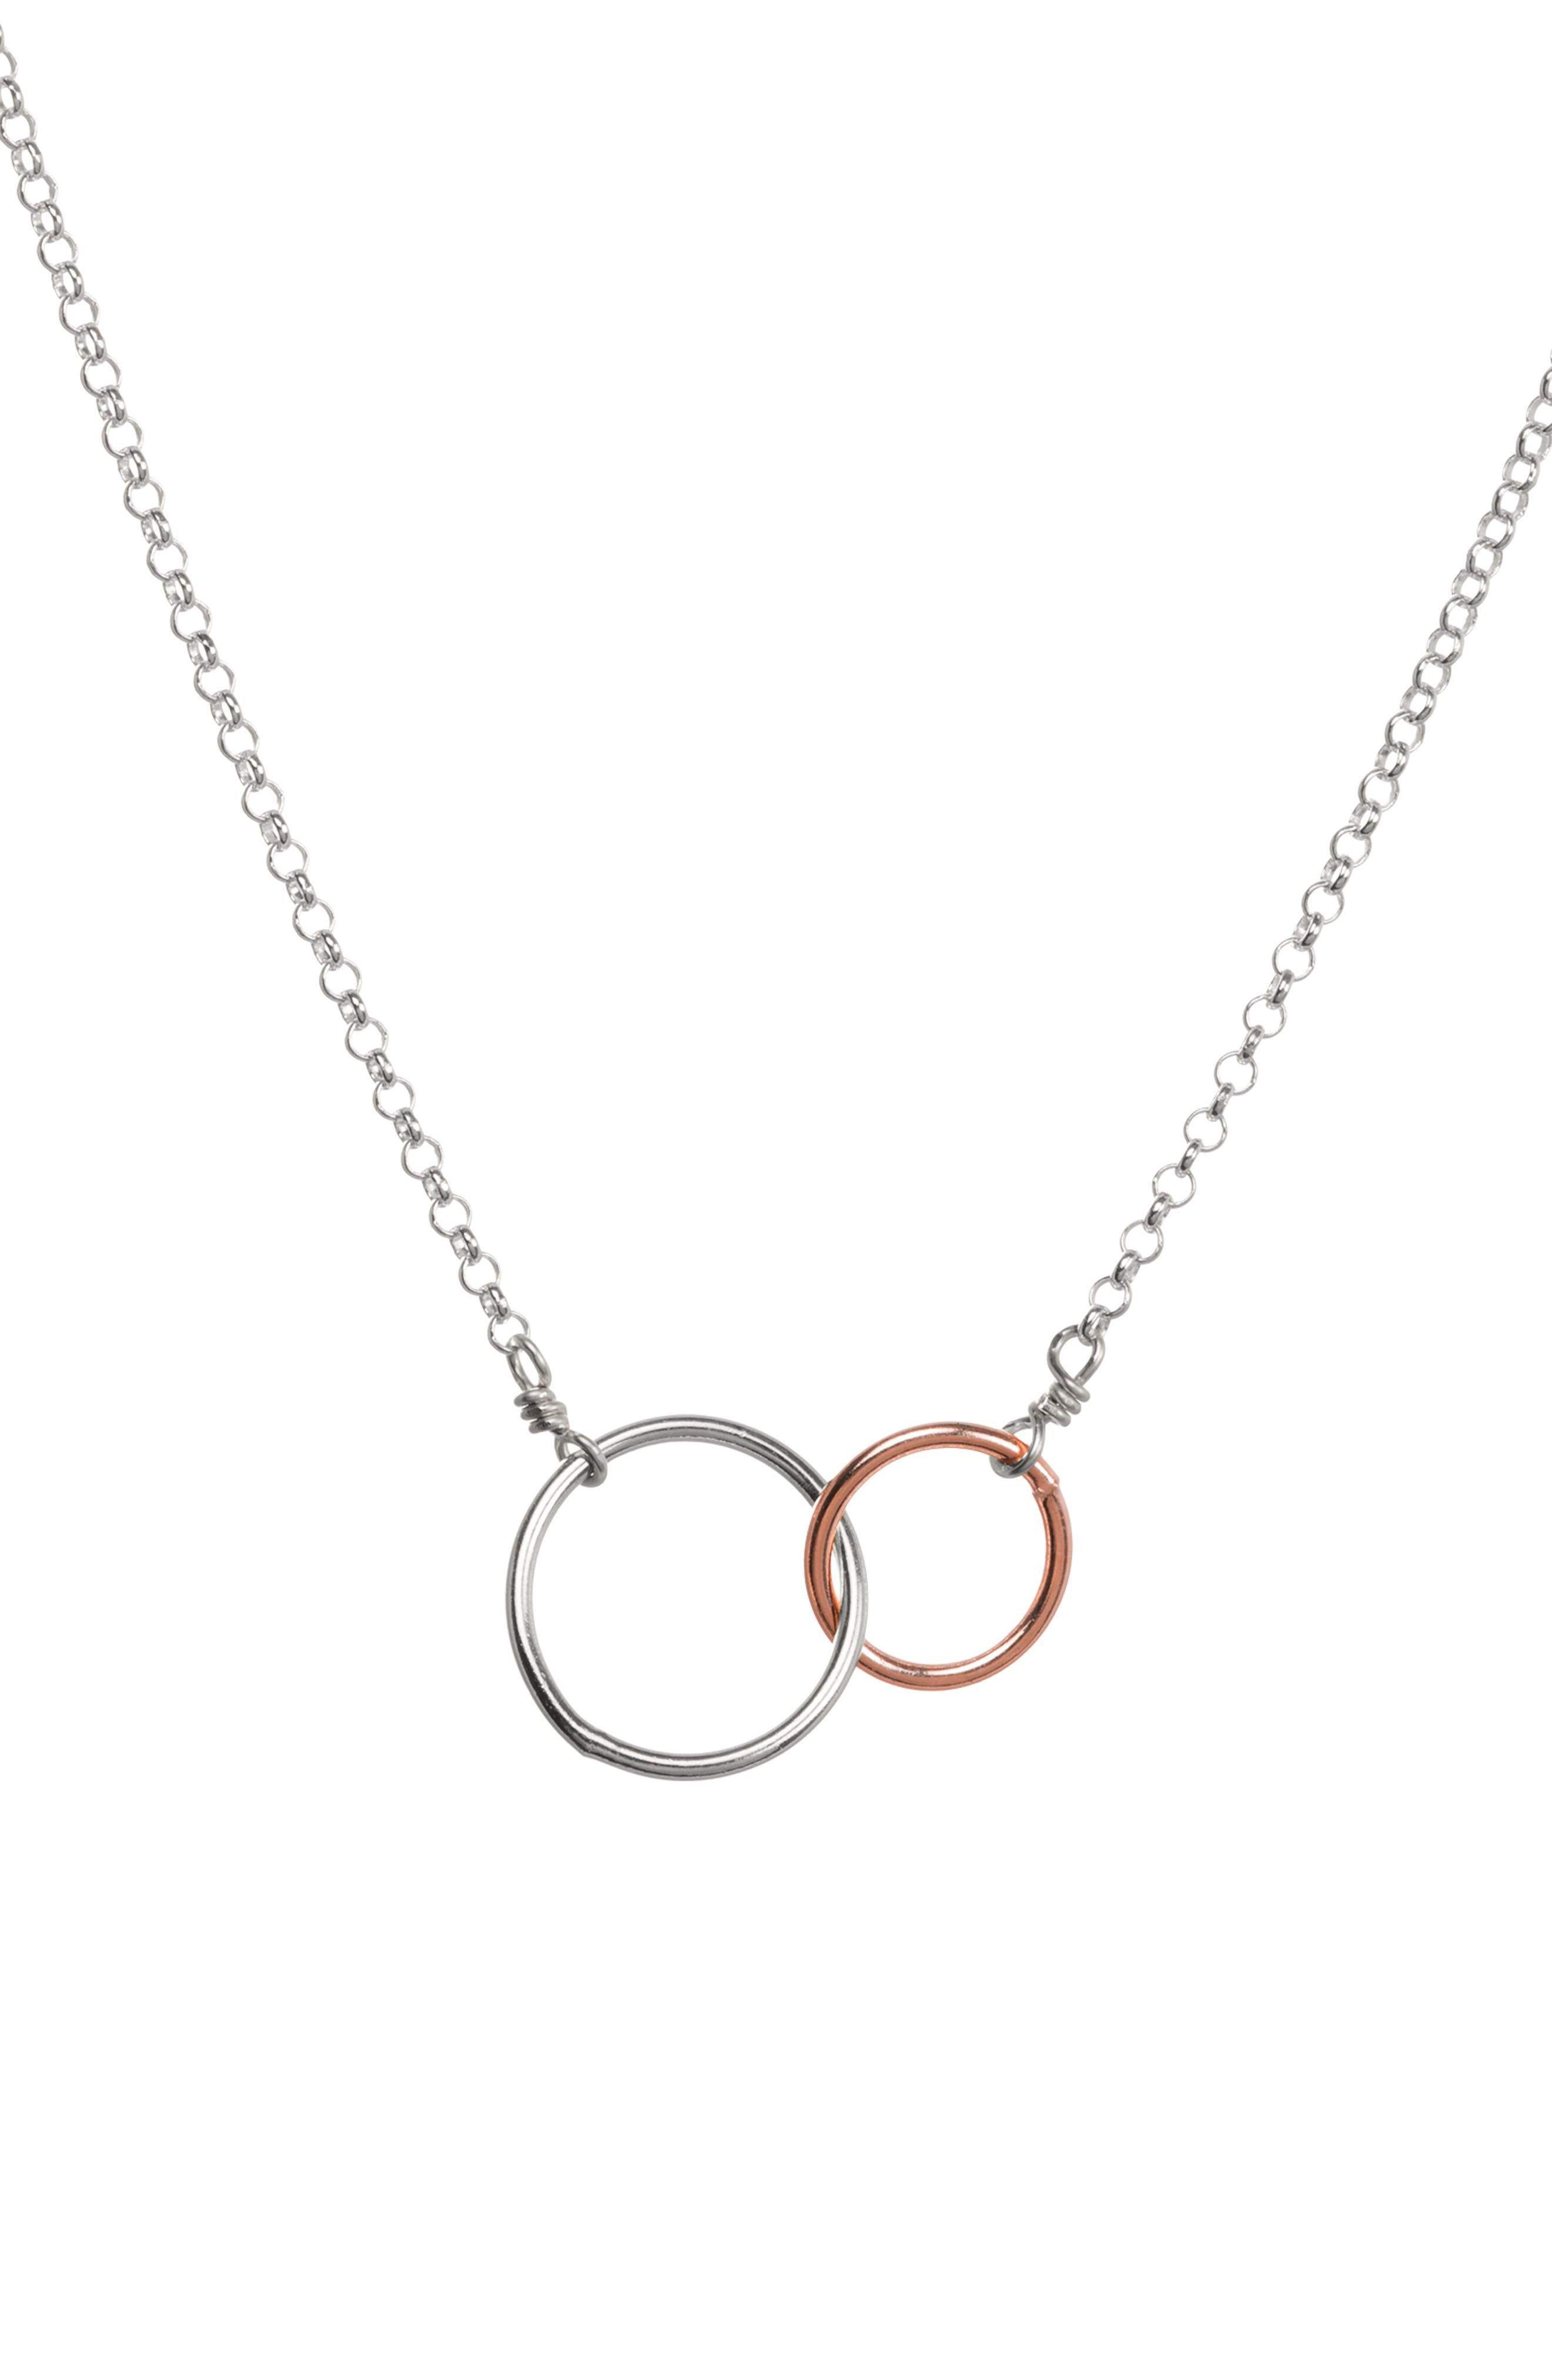 Friends for Life Necklace,                             Alternate thumbnail 5, color,